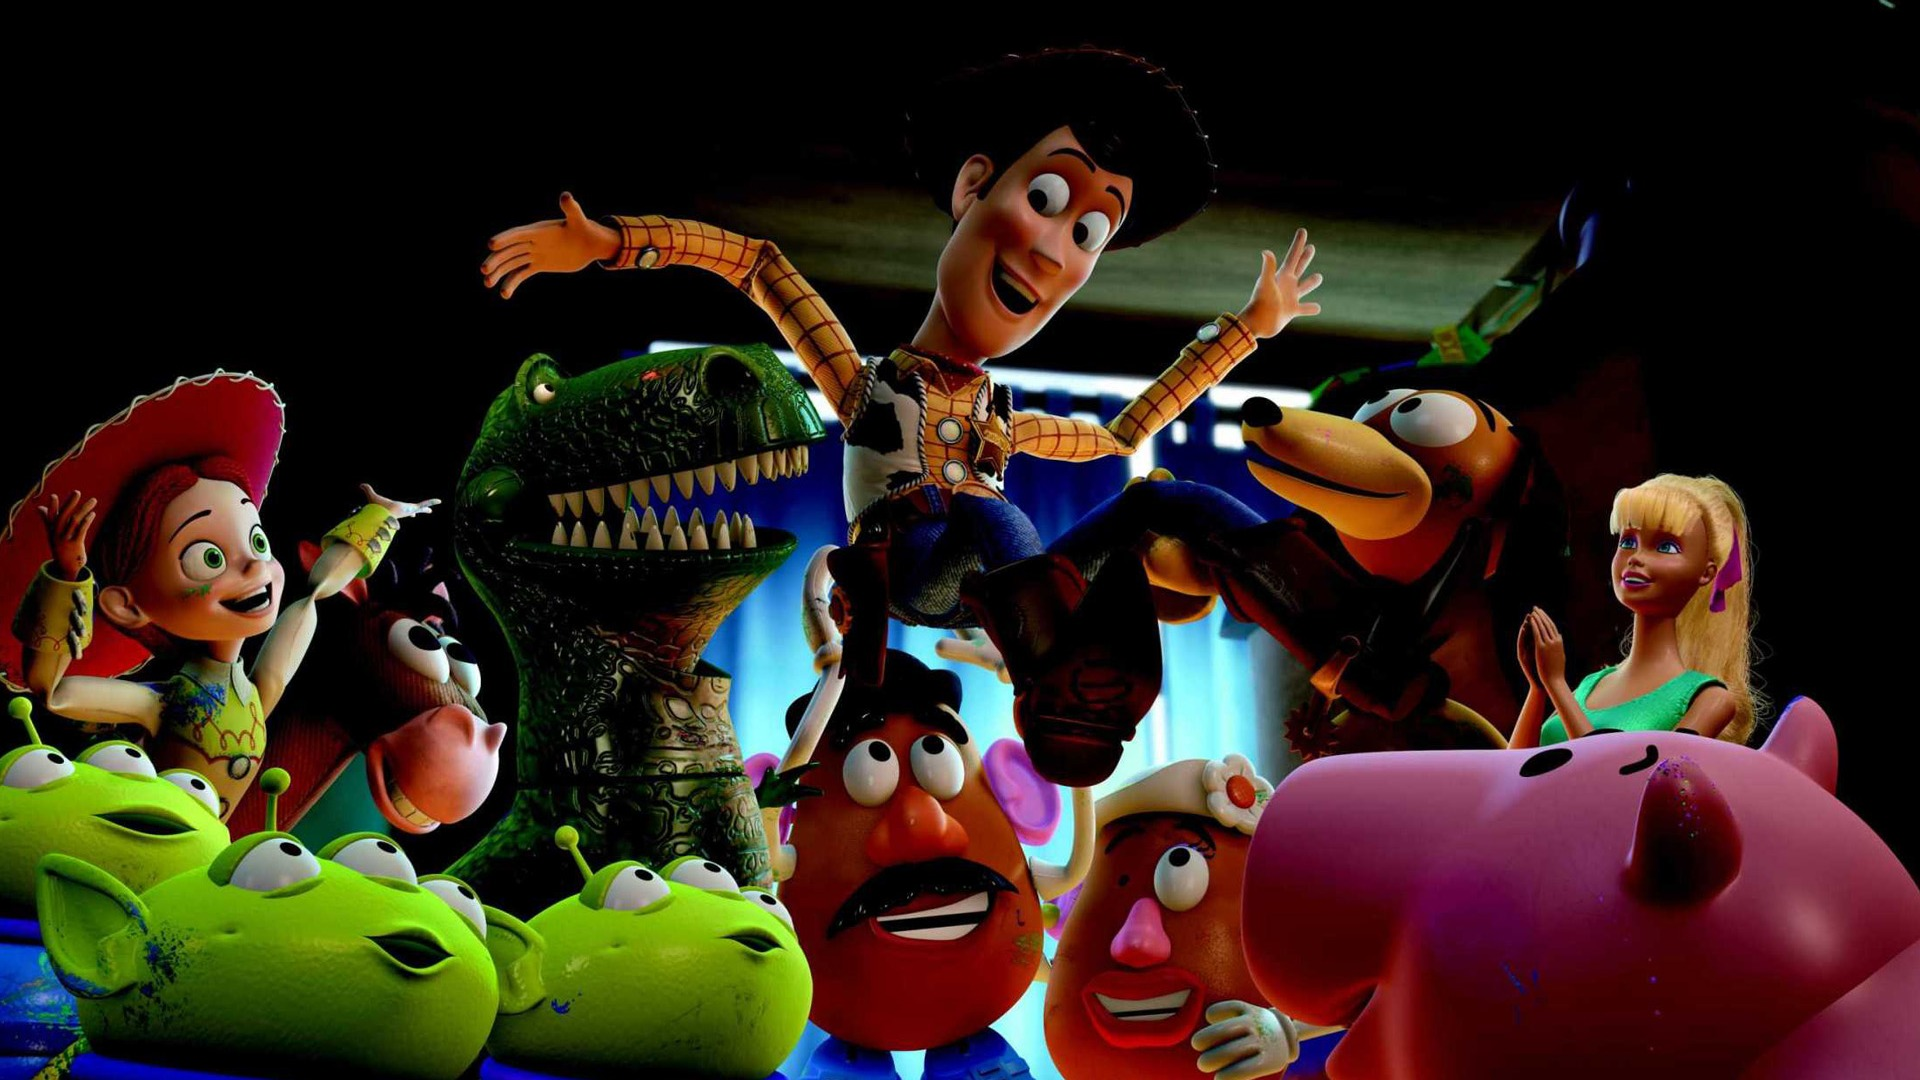 Toy Story Wallpaper  dwitongelu 1920x1080